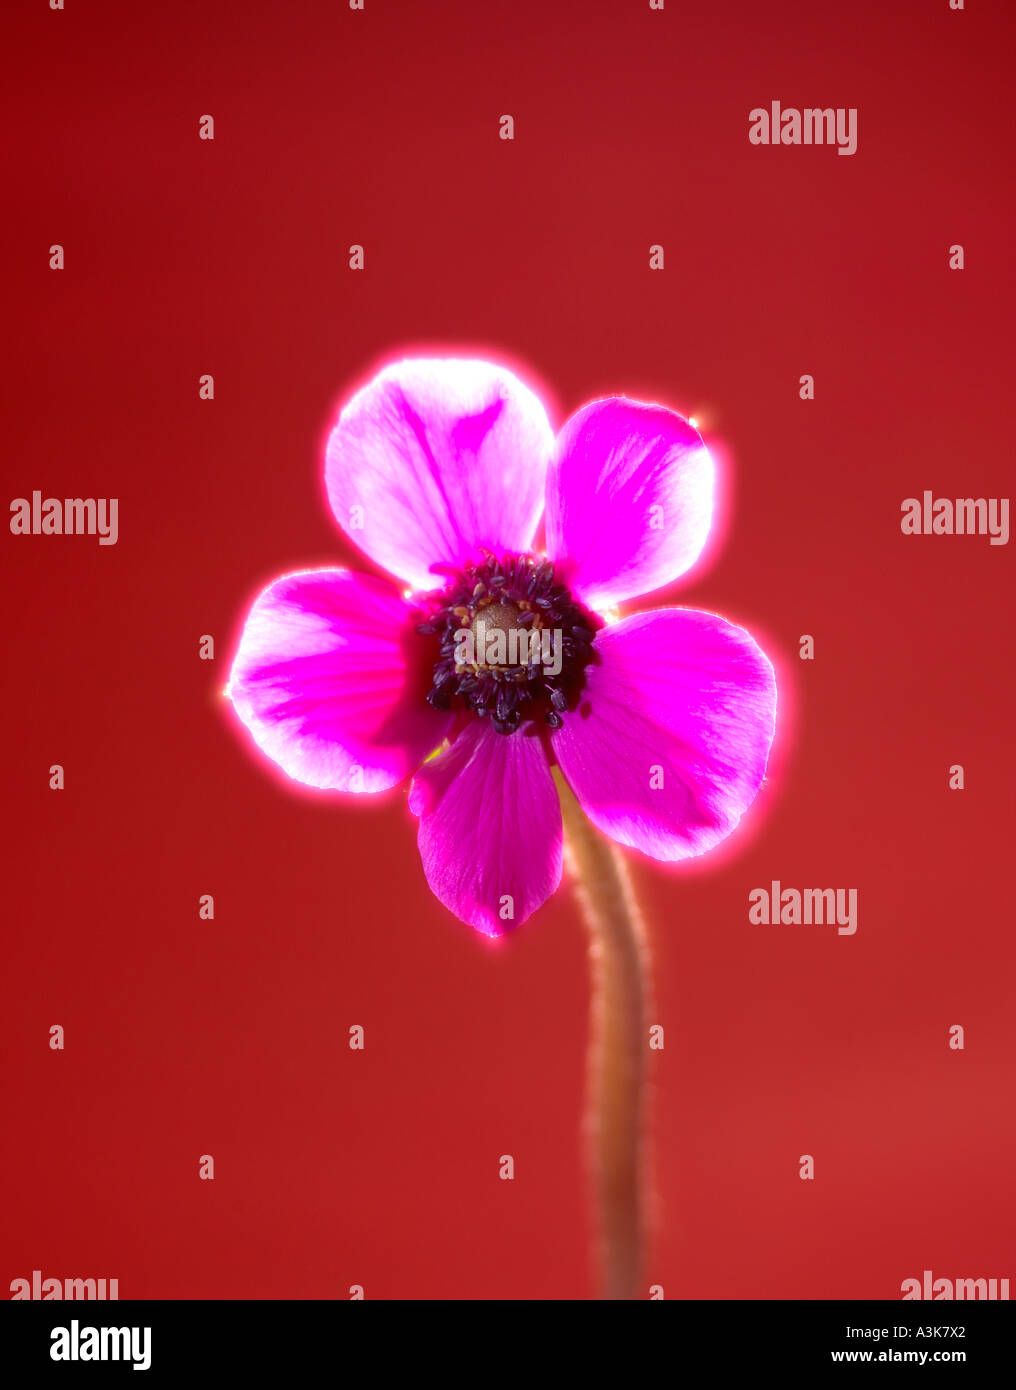 A Single Pink flower on a Red Background portrait format with a solarised effect - Stock Image